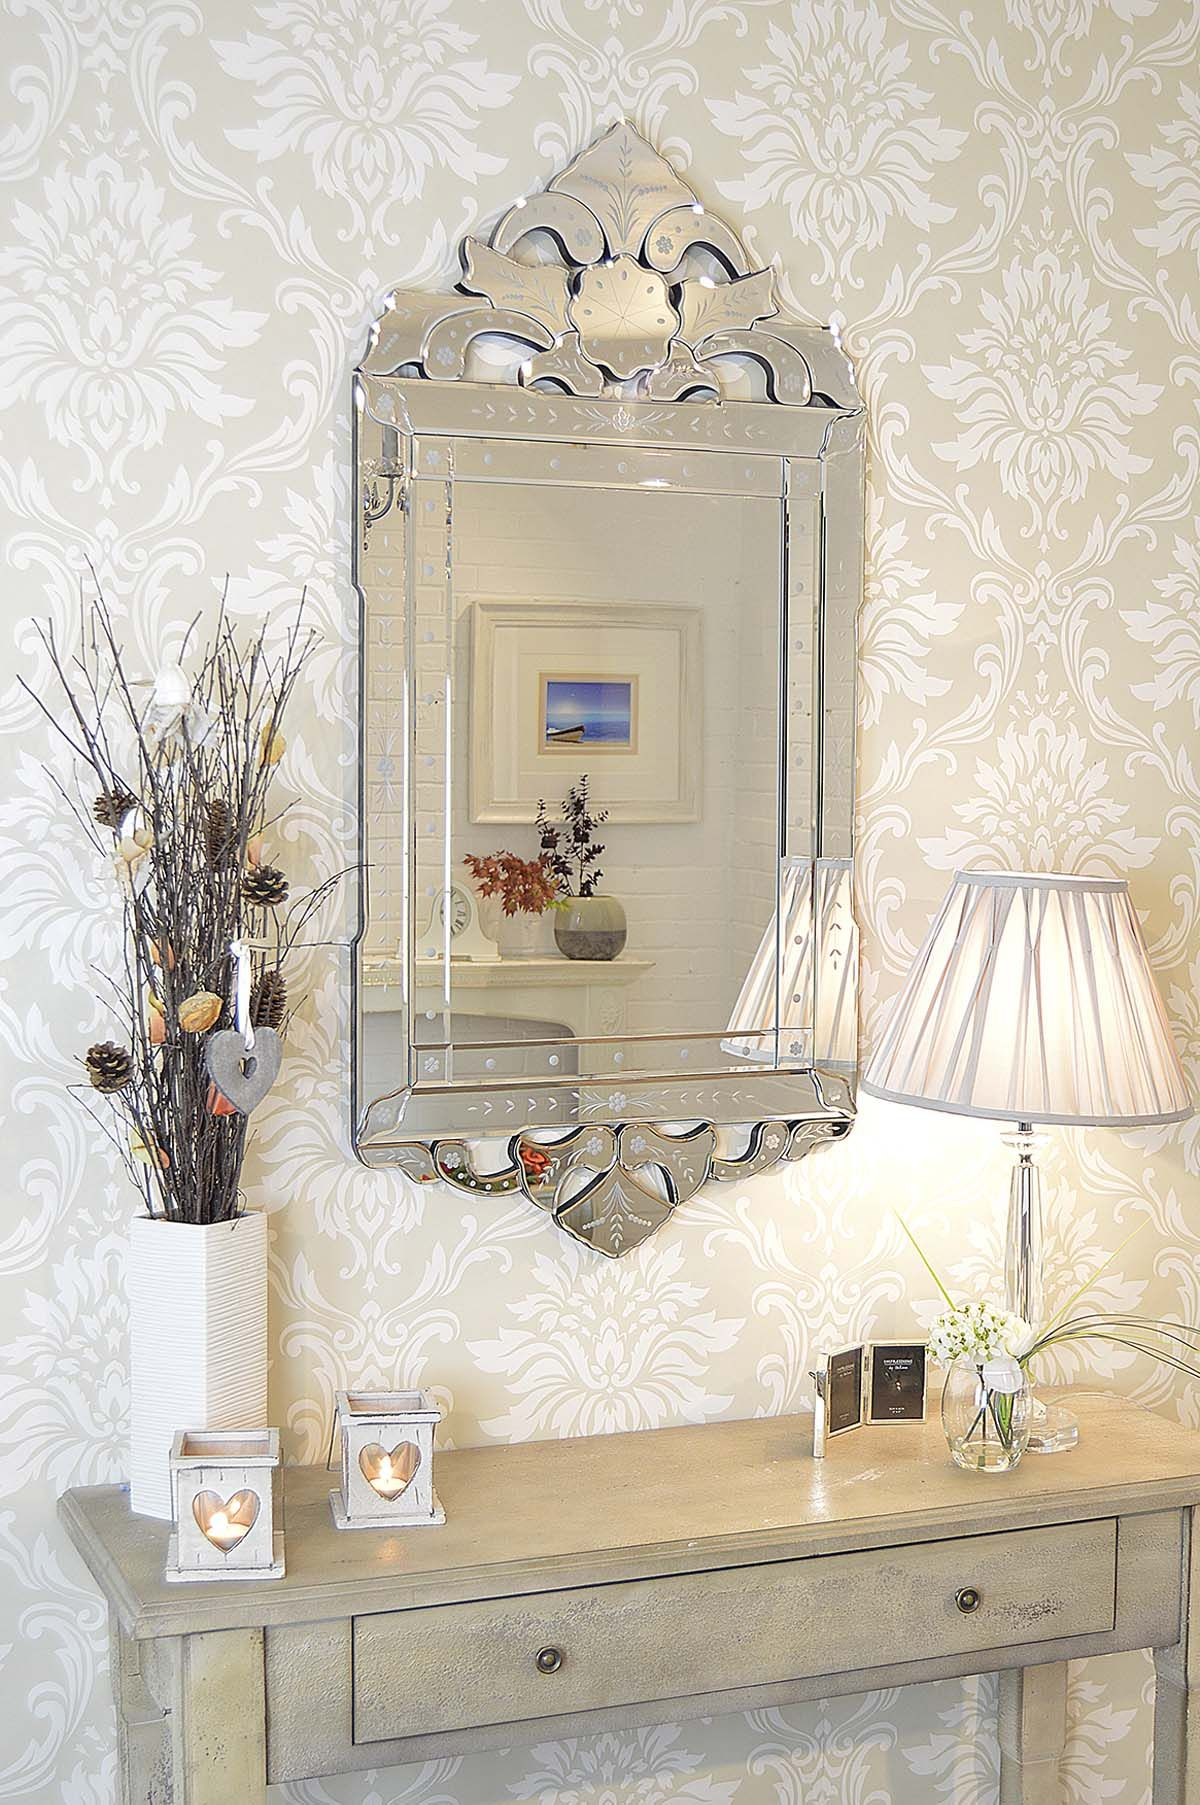 Unique antique style venetian mirror is a unusual crested frame wall ...